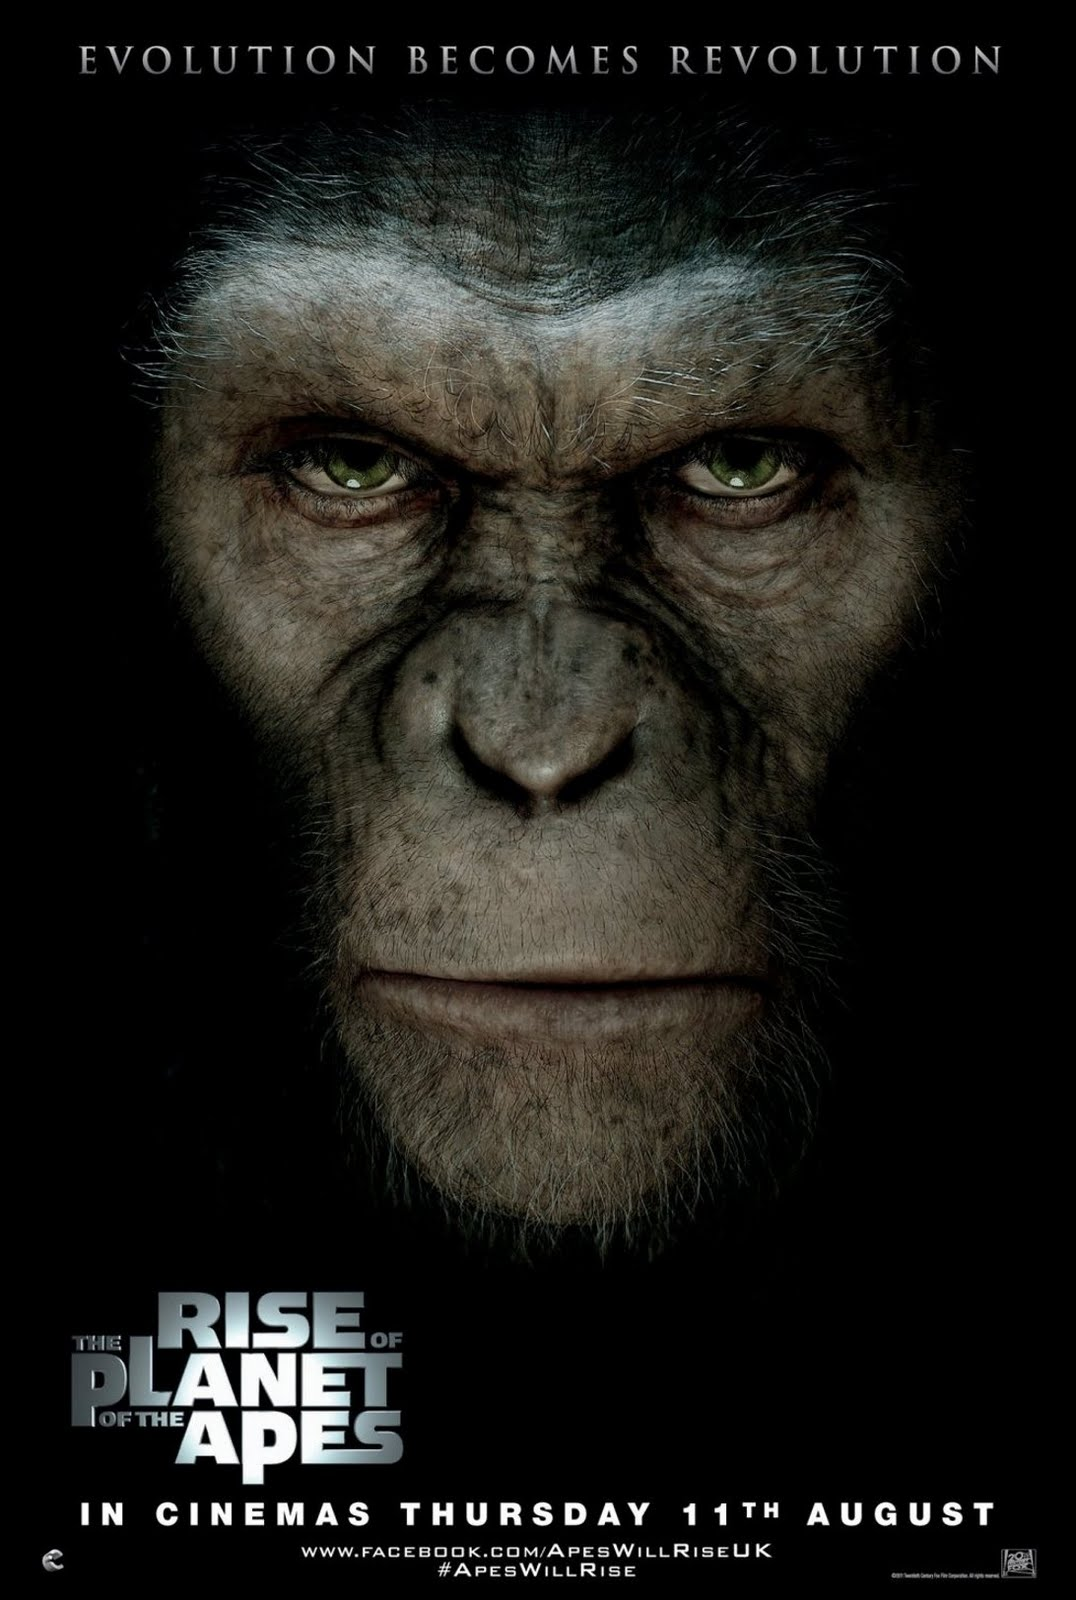 http://4.bp.blogspot.com/-Q7XkeKpaBHk/TkkMbOipI6I/AAAAAAAABAg/2MpC0XNlpRY/s1600/rise-of-the-planet-of-the-apes0.jpg